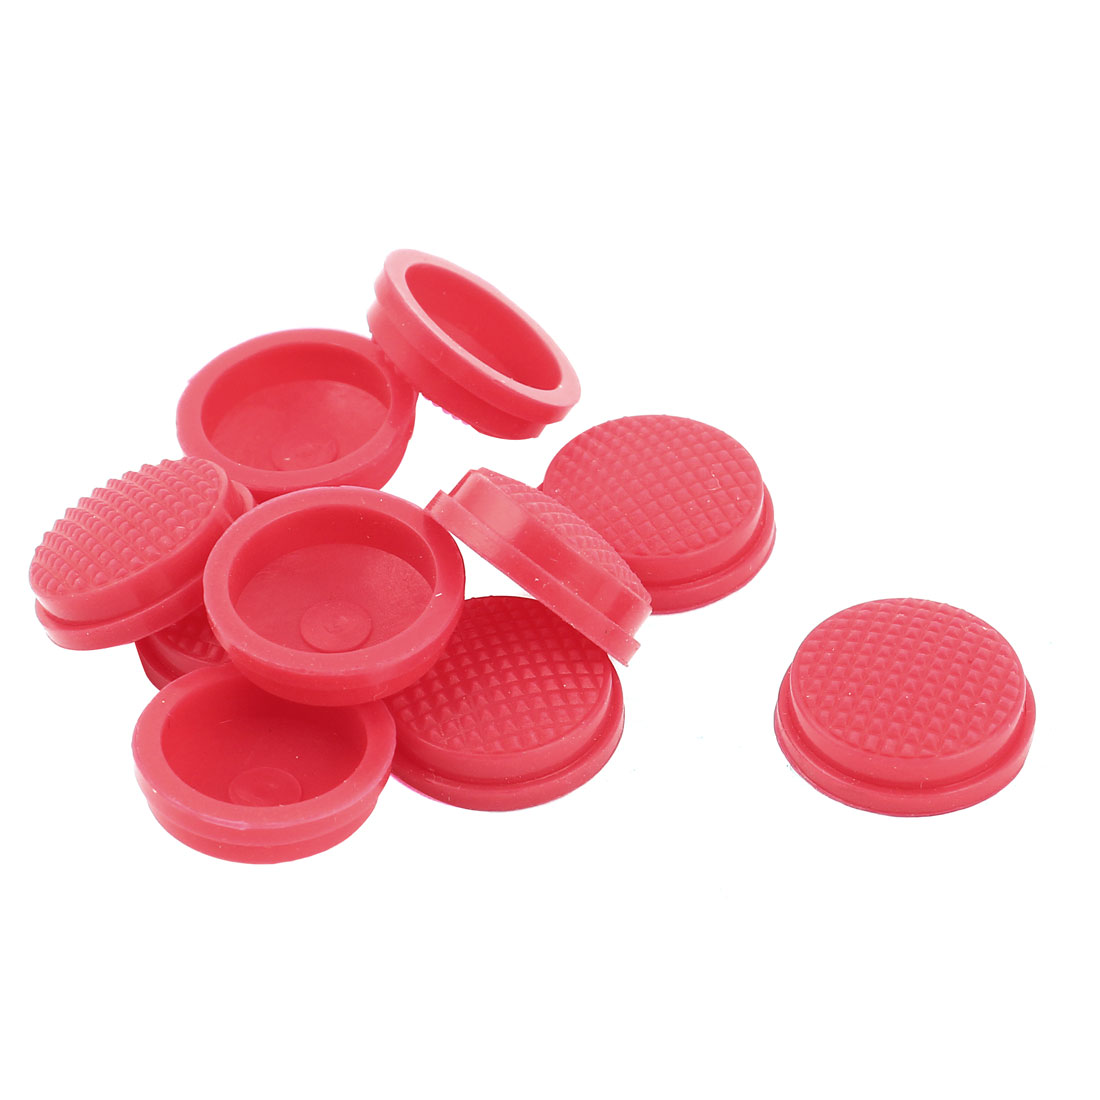 10pcs 18mm Dia Waterproof Cover Cap Case Red for Round Head Rocker Switch